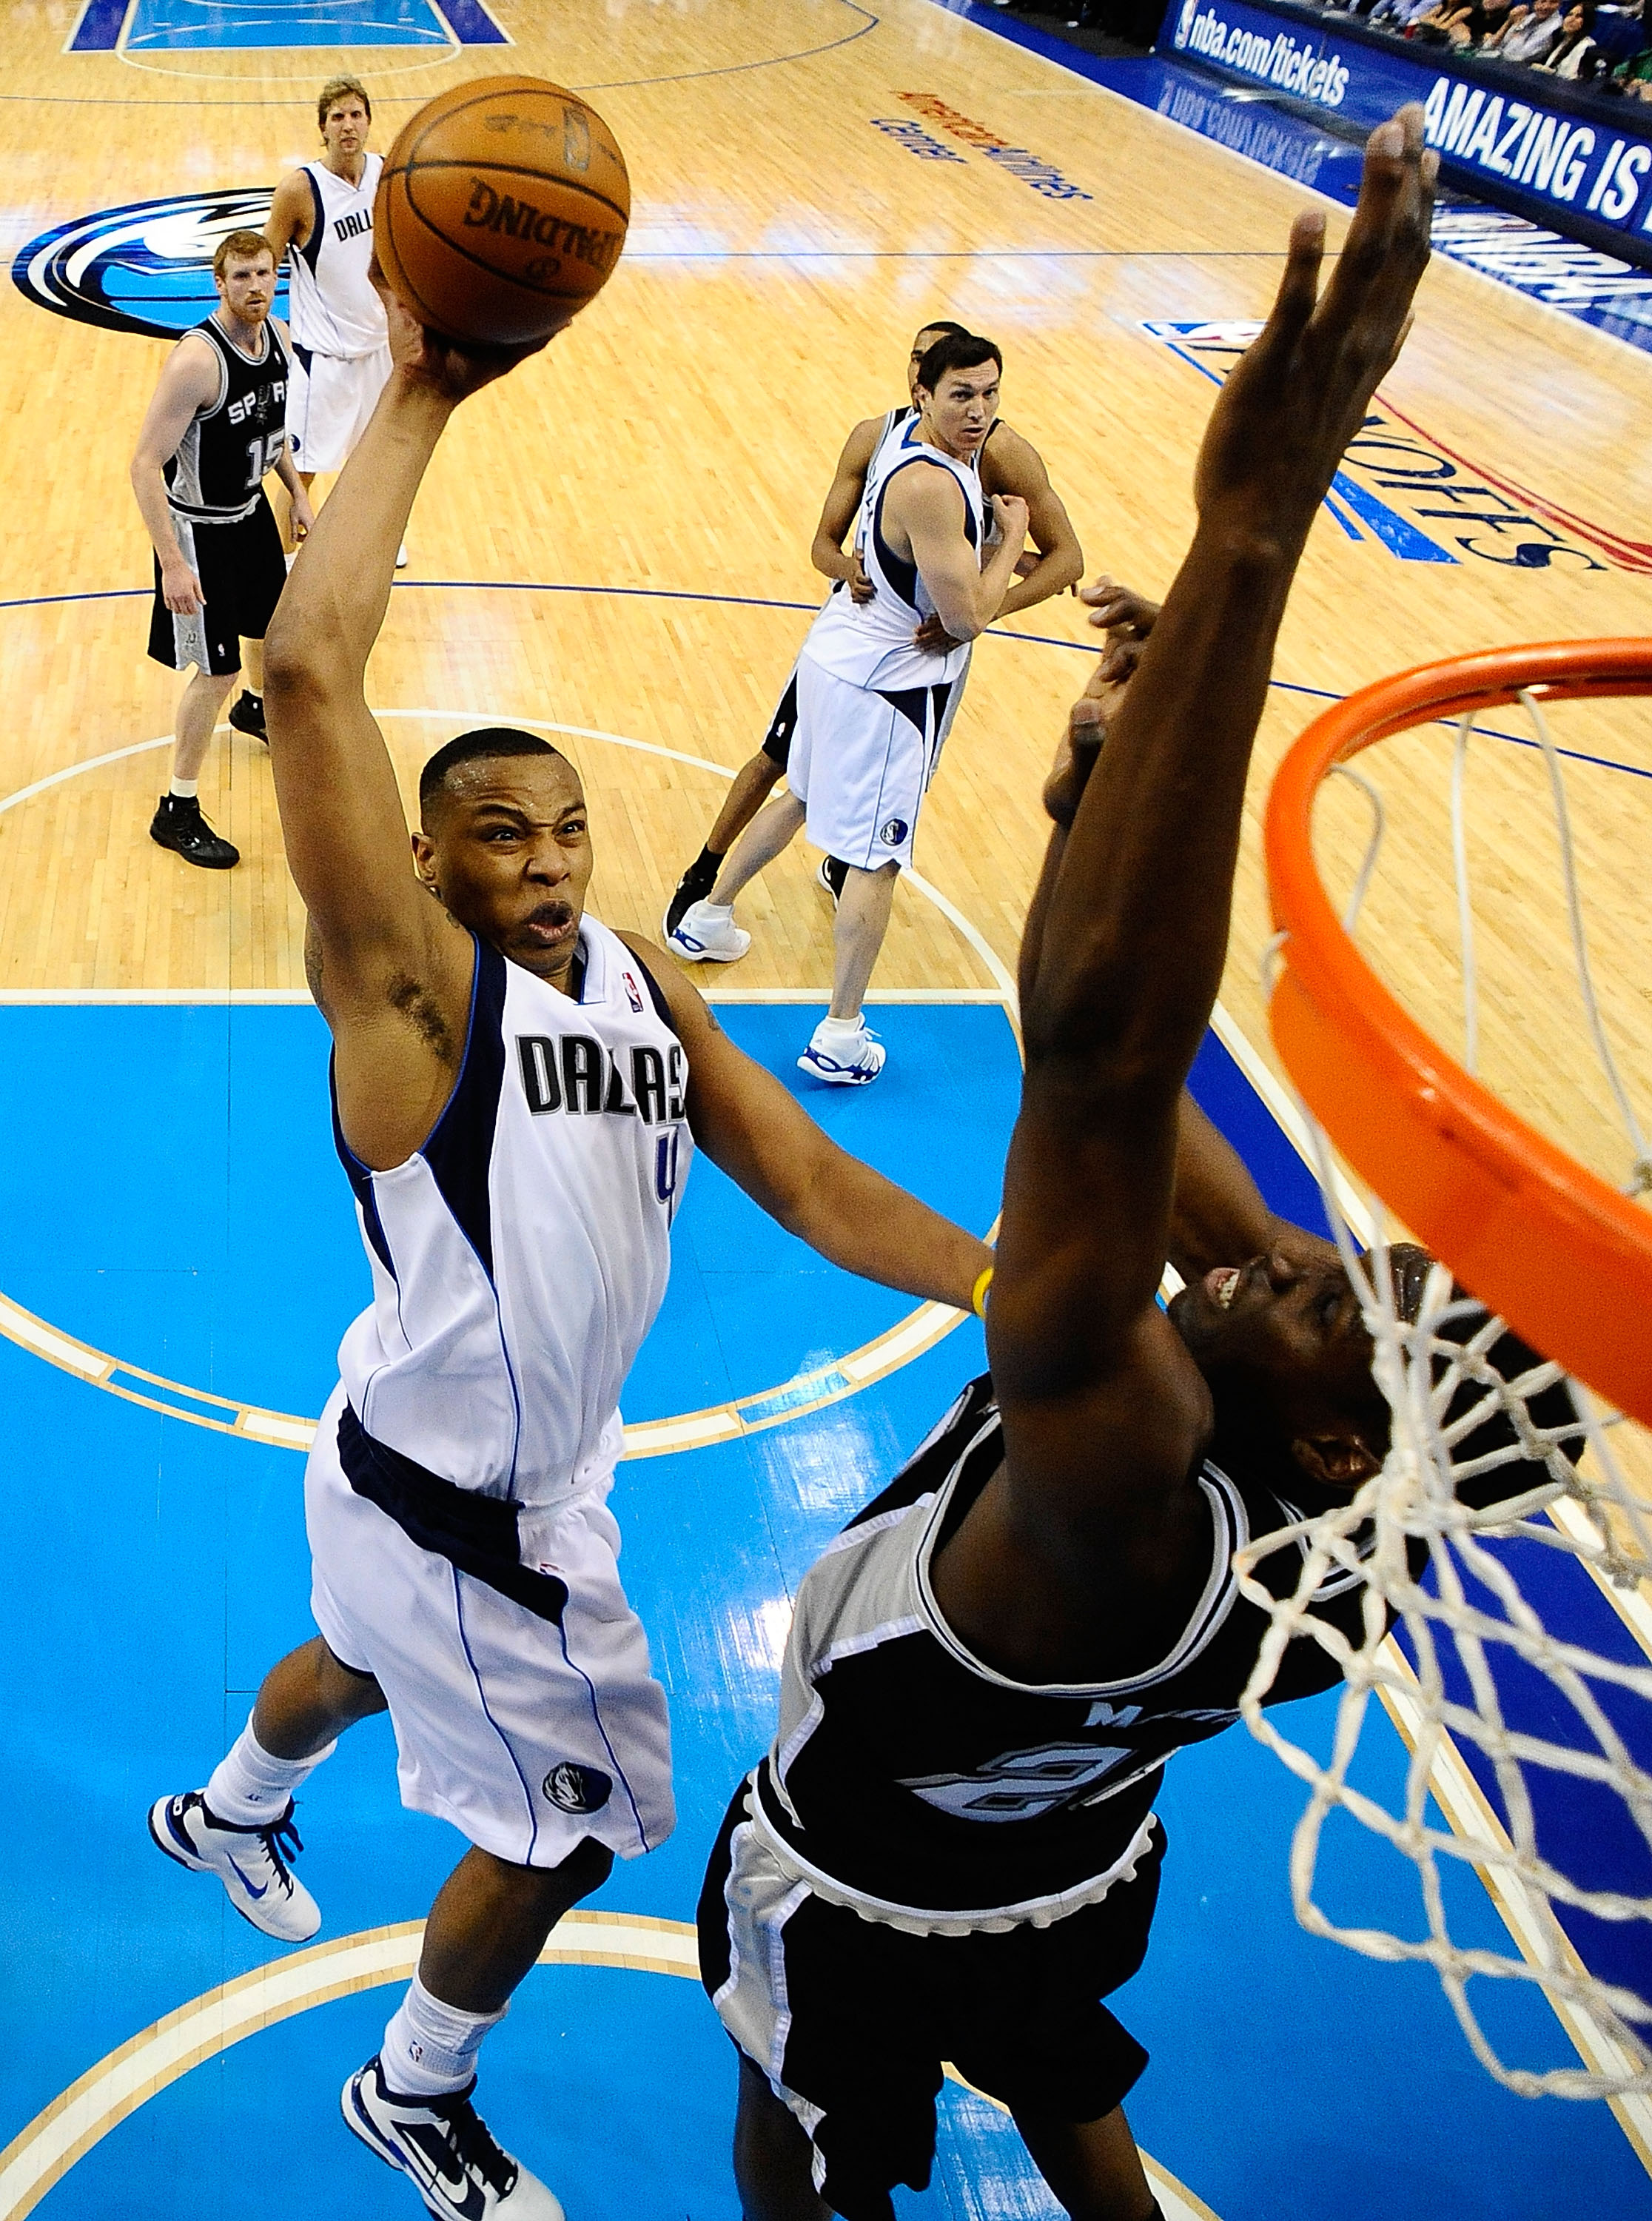 DALLAS - APRIL 27:  Forward Caron Butler #4 of the Dallas Mavericks takes a shot against Ian Mahinmi #28 of the San Antonio Spurs in Game Five of the Western Conference Quarterfinals during the 2010 NBA Playoffs at American Airlines Center on April 27, 20